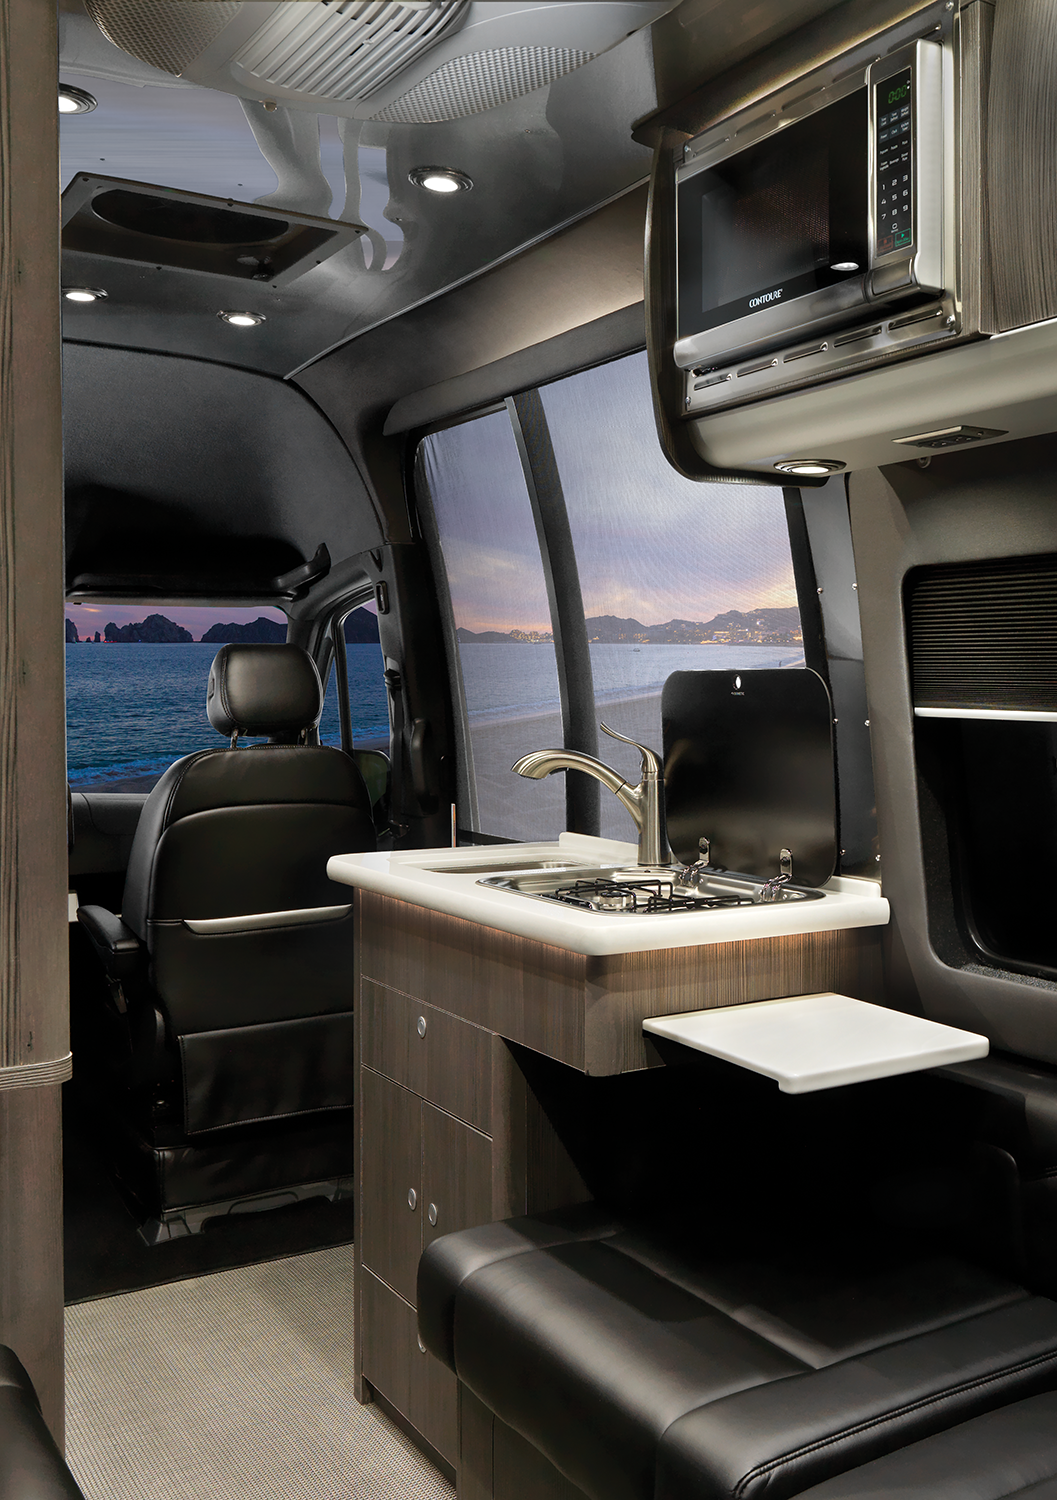 2020 Interstate 19 Interior Galley